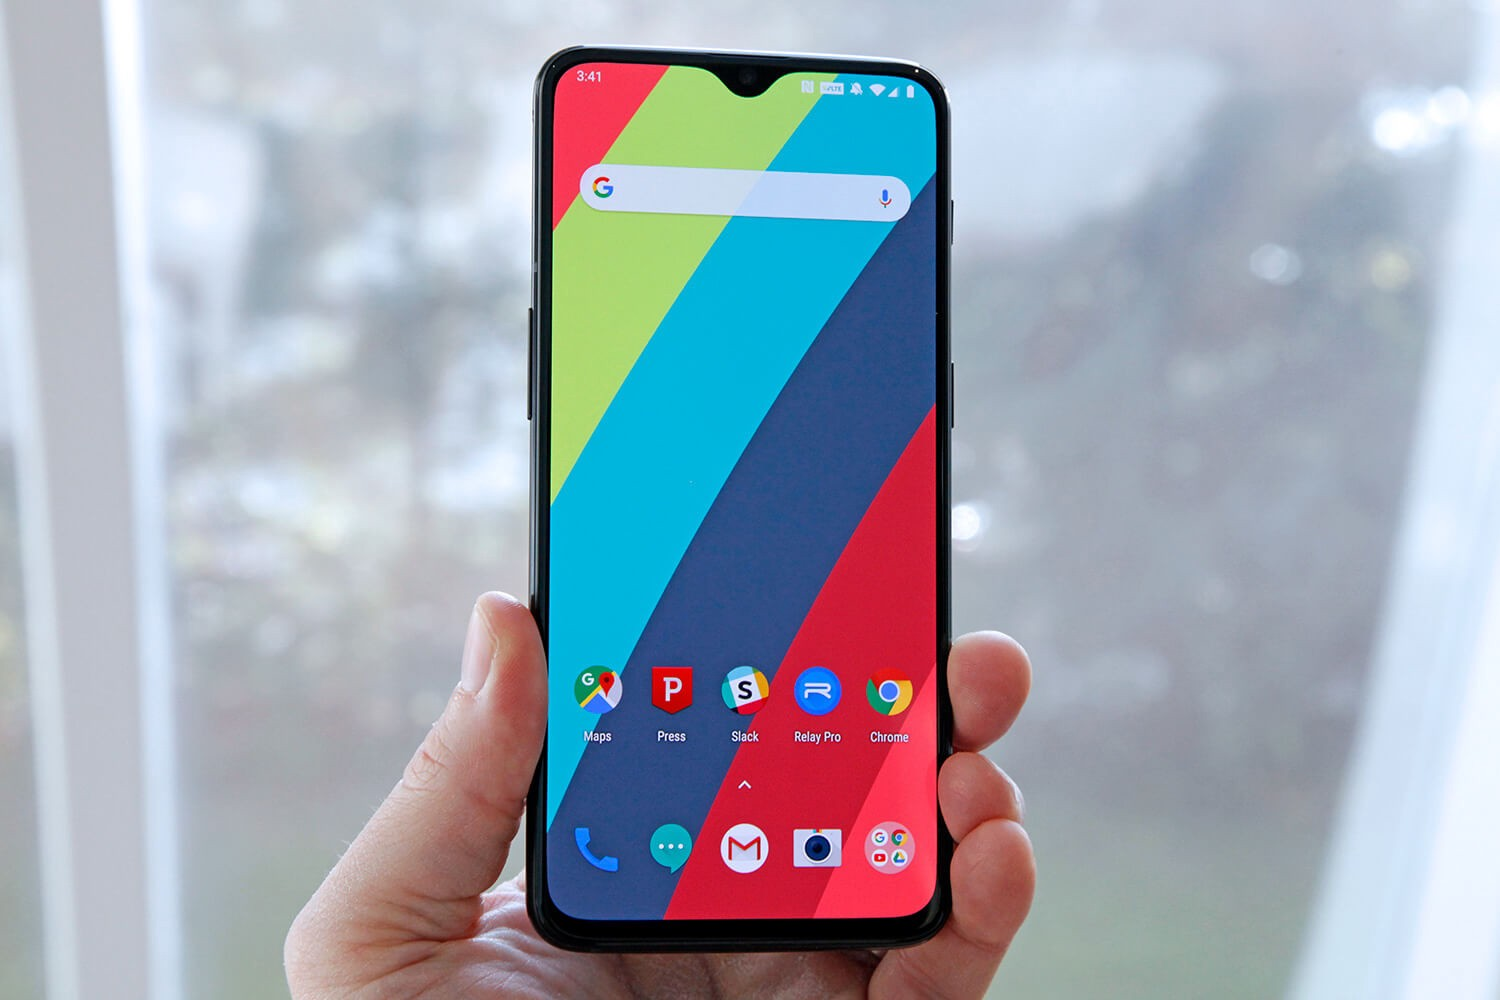 Oneplus 6t Vs Oneplus 6 Comparison Is There Any Difference By Atul Pandey Medium